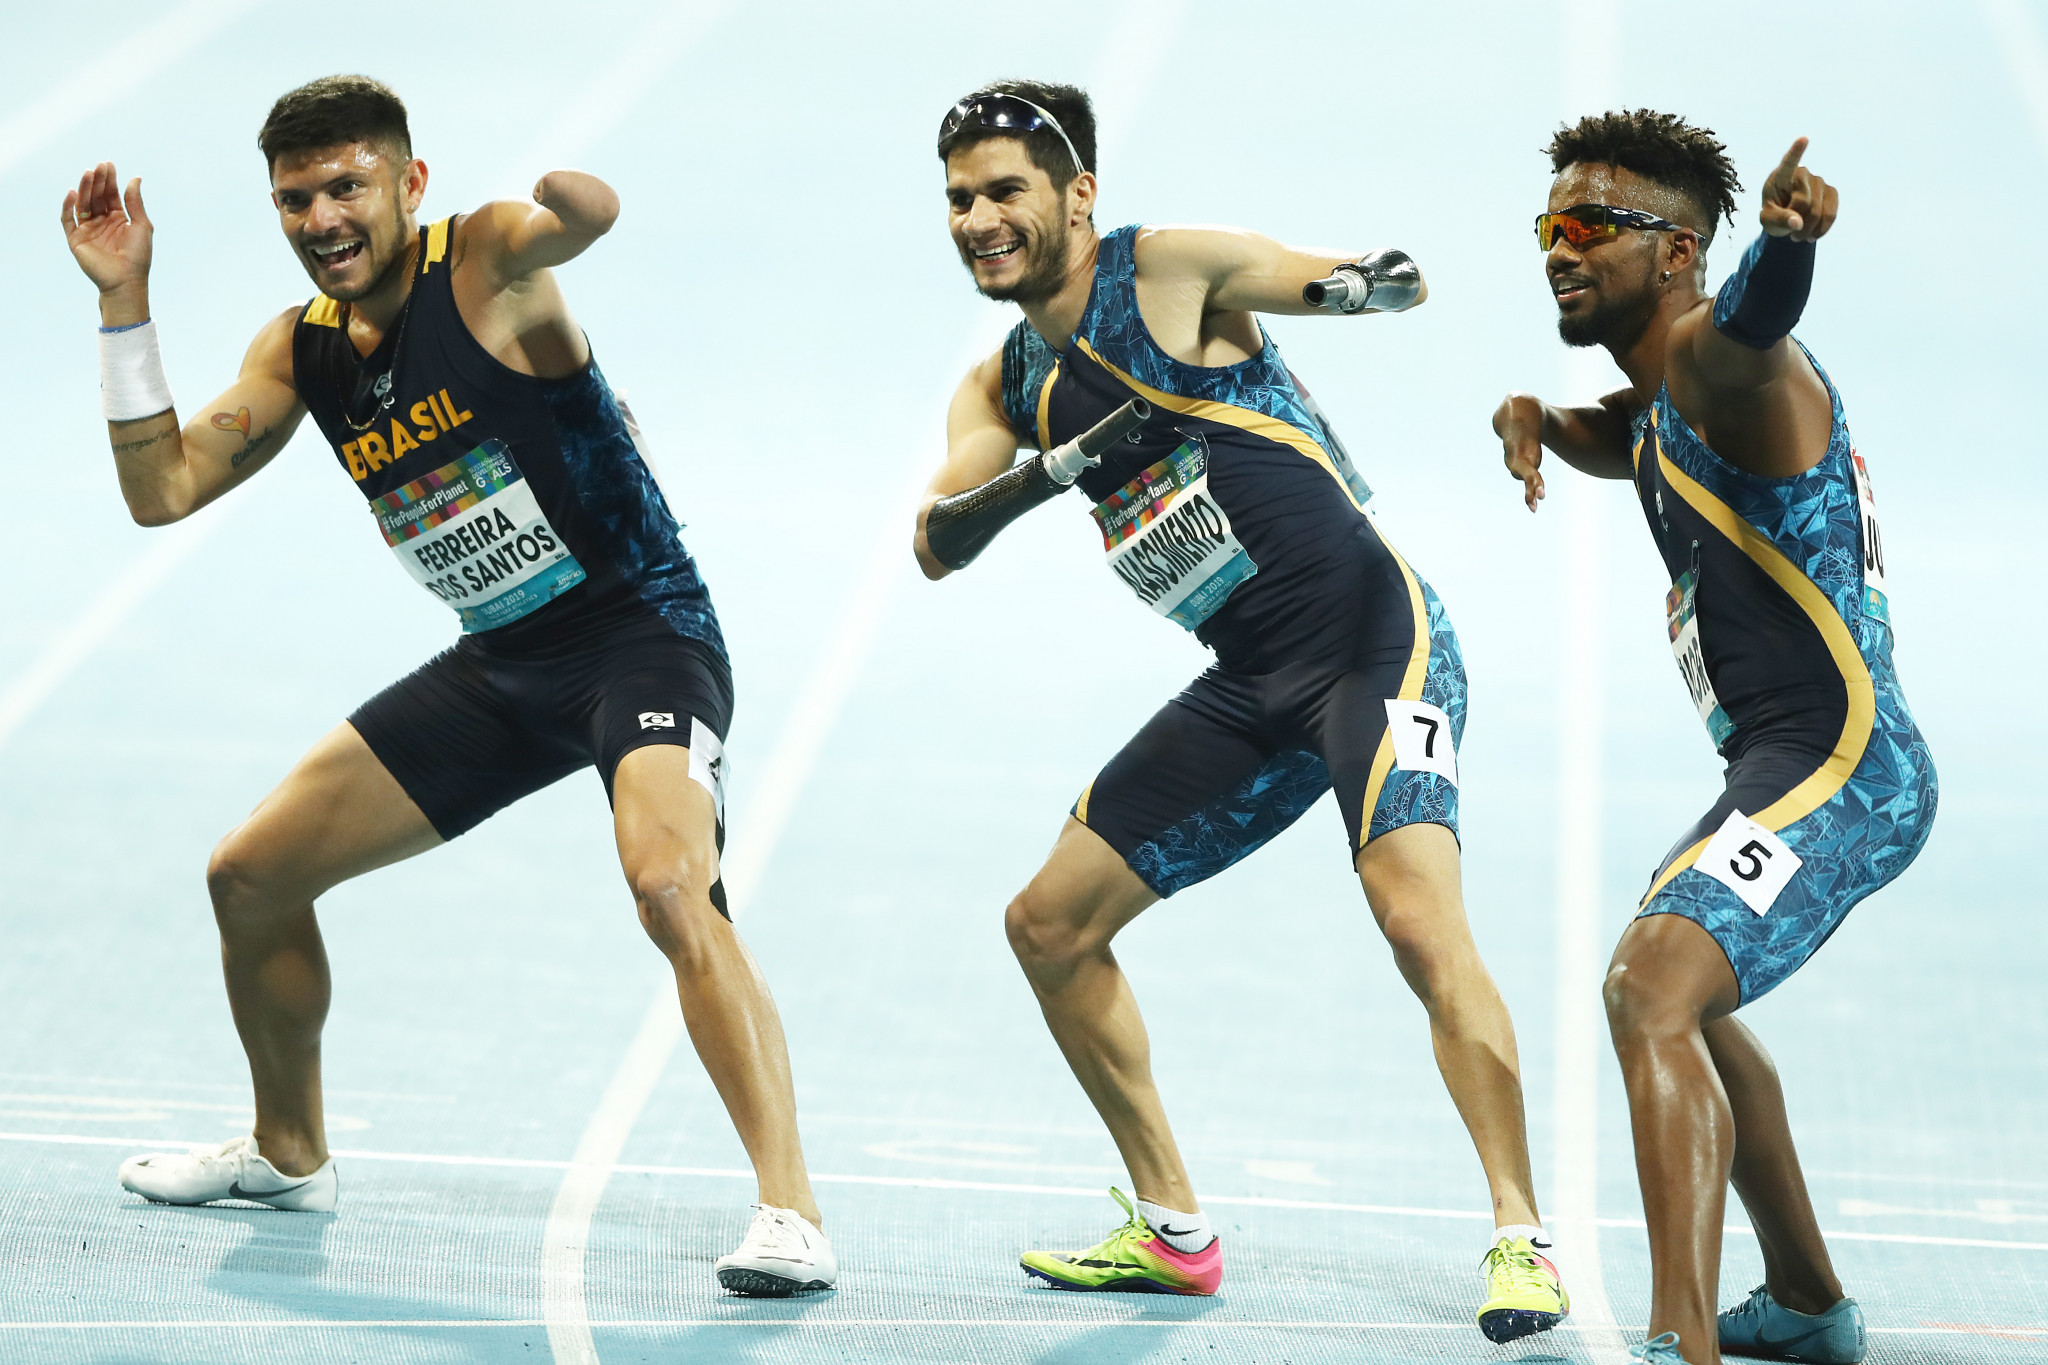 Brazilians create history with clean sweep in men's 100m T47 at World Para Athletics Championships